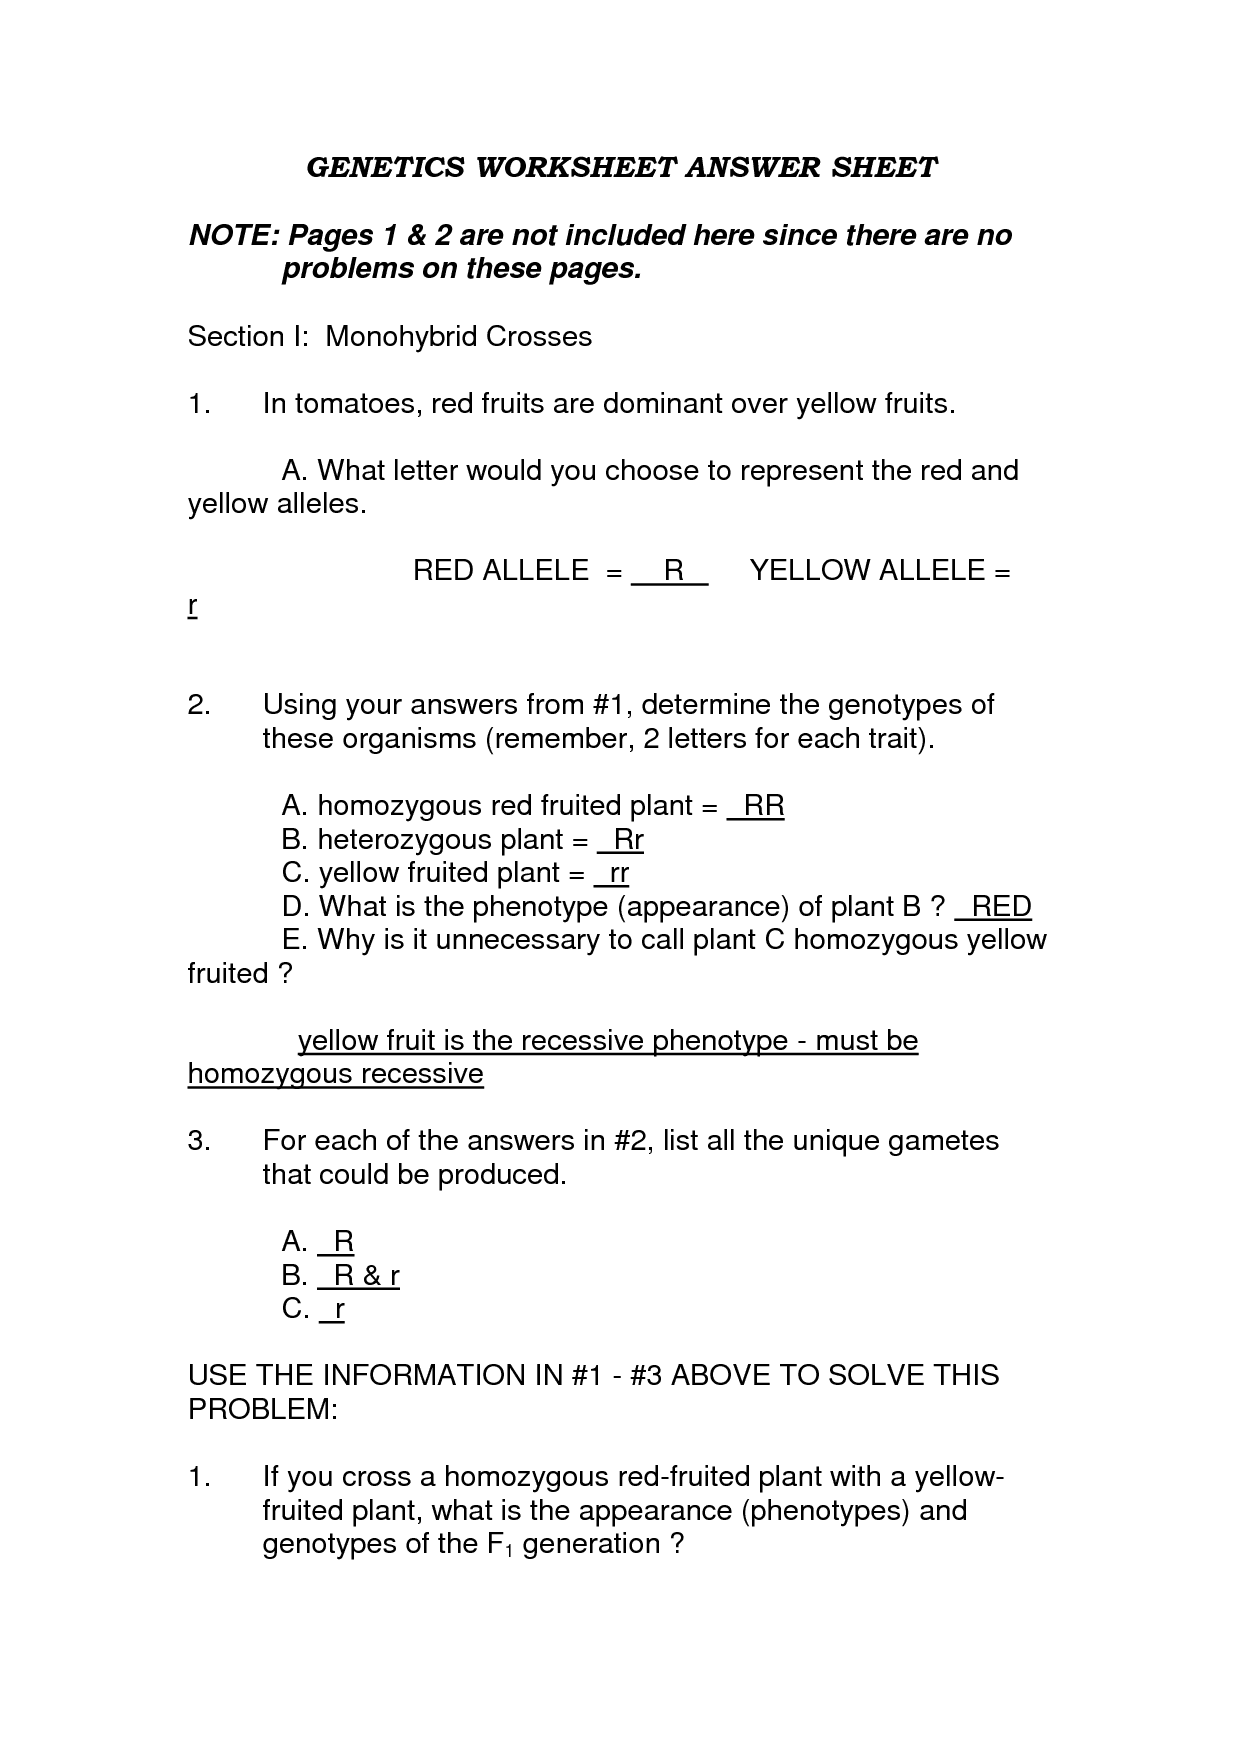 Monohybrid Problems Worksheet Answers And Blood Type And Inheritance Worksheet